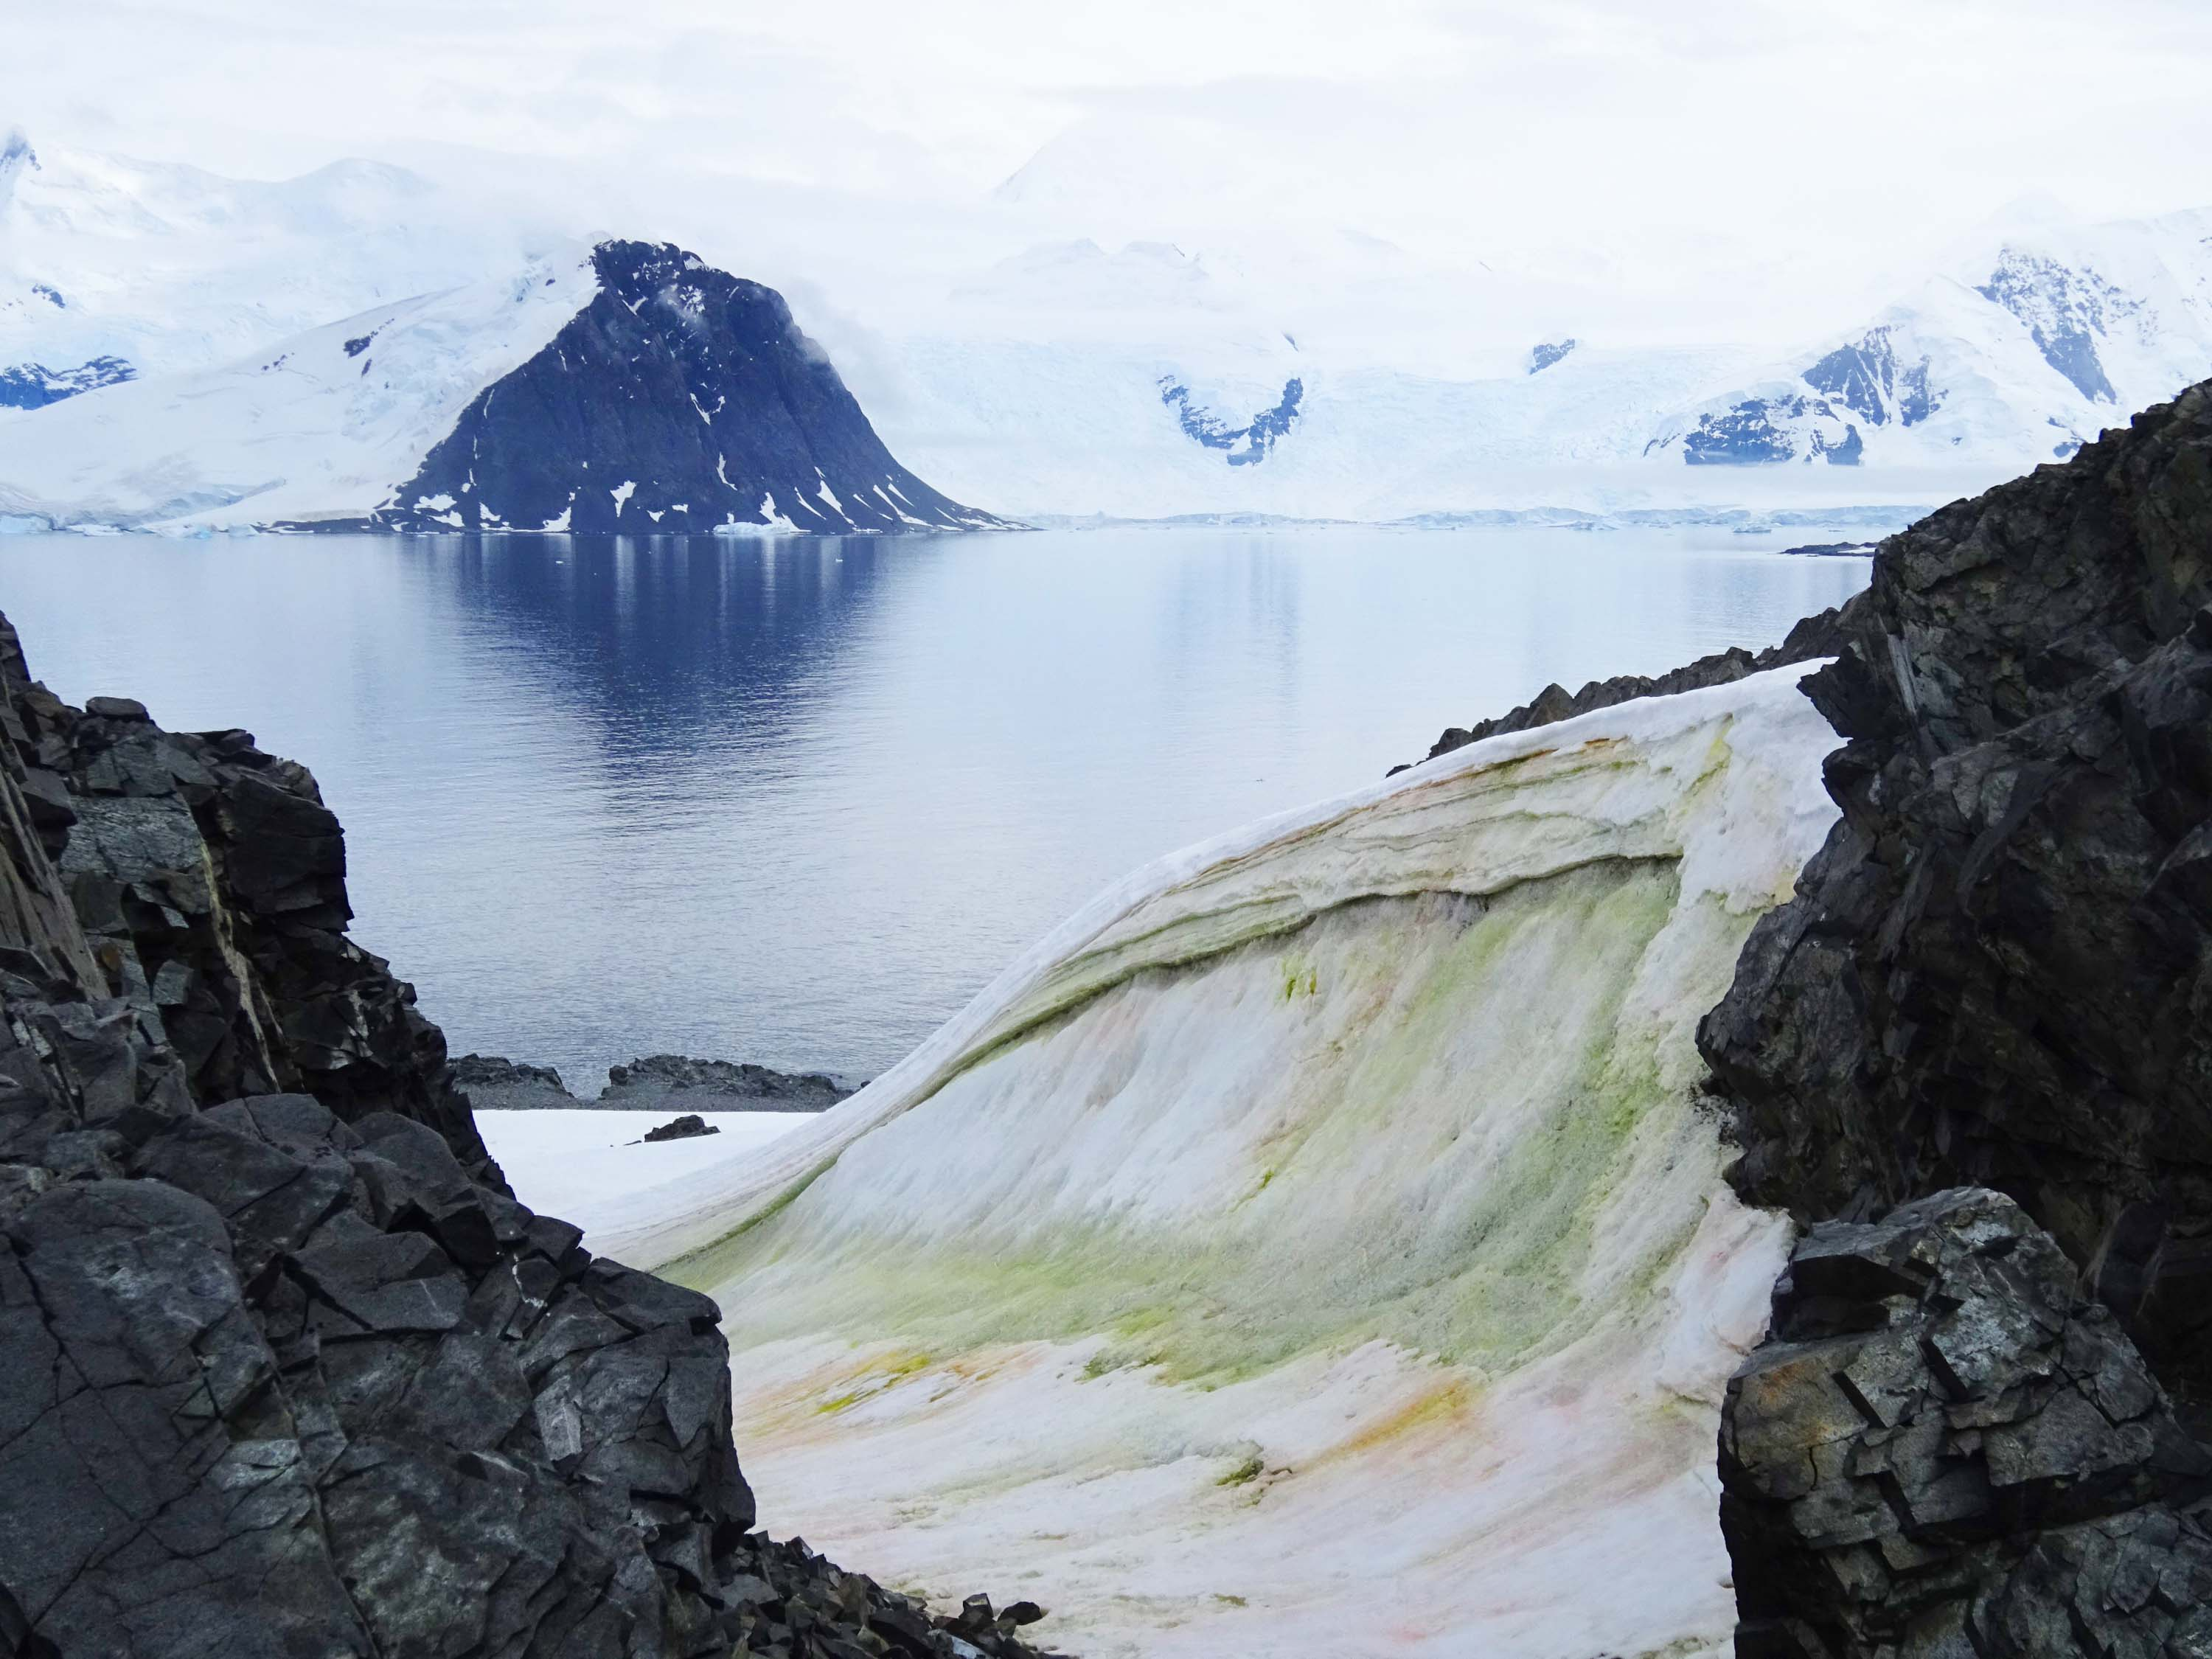 Snow is turning green in Antarctica — and climate change will make it worse